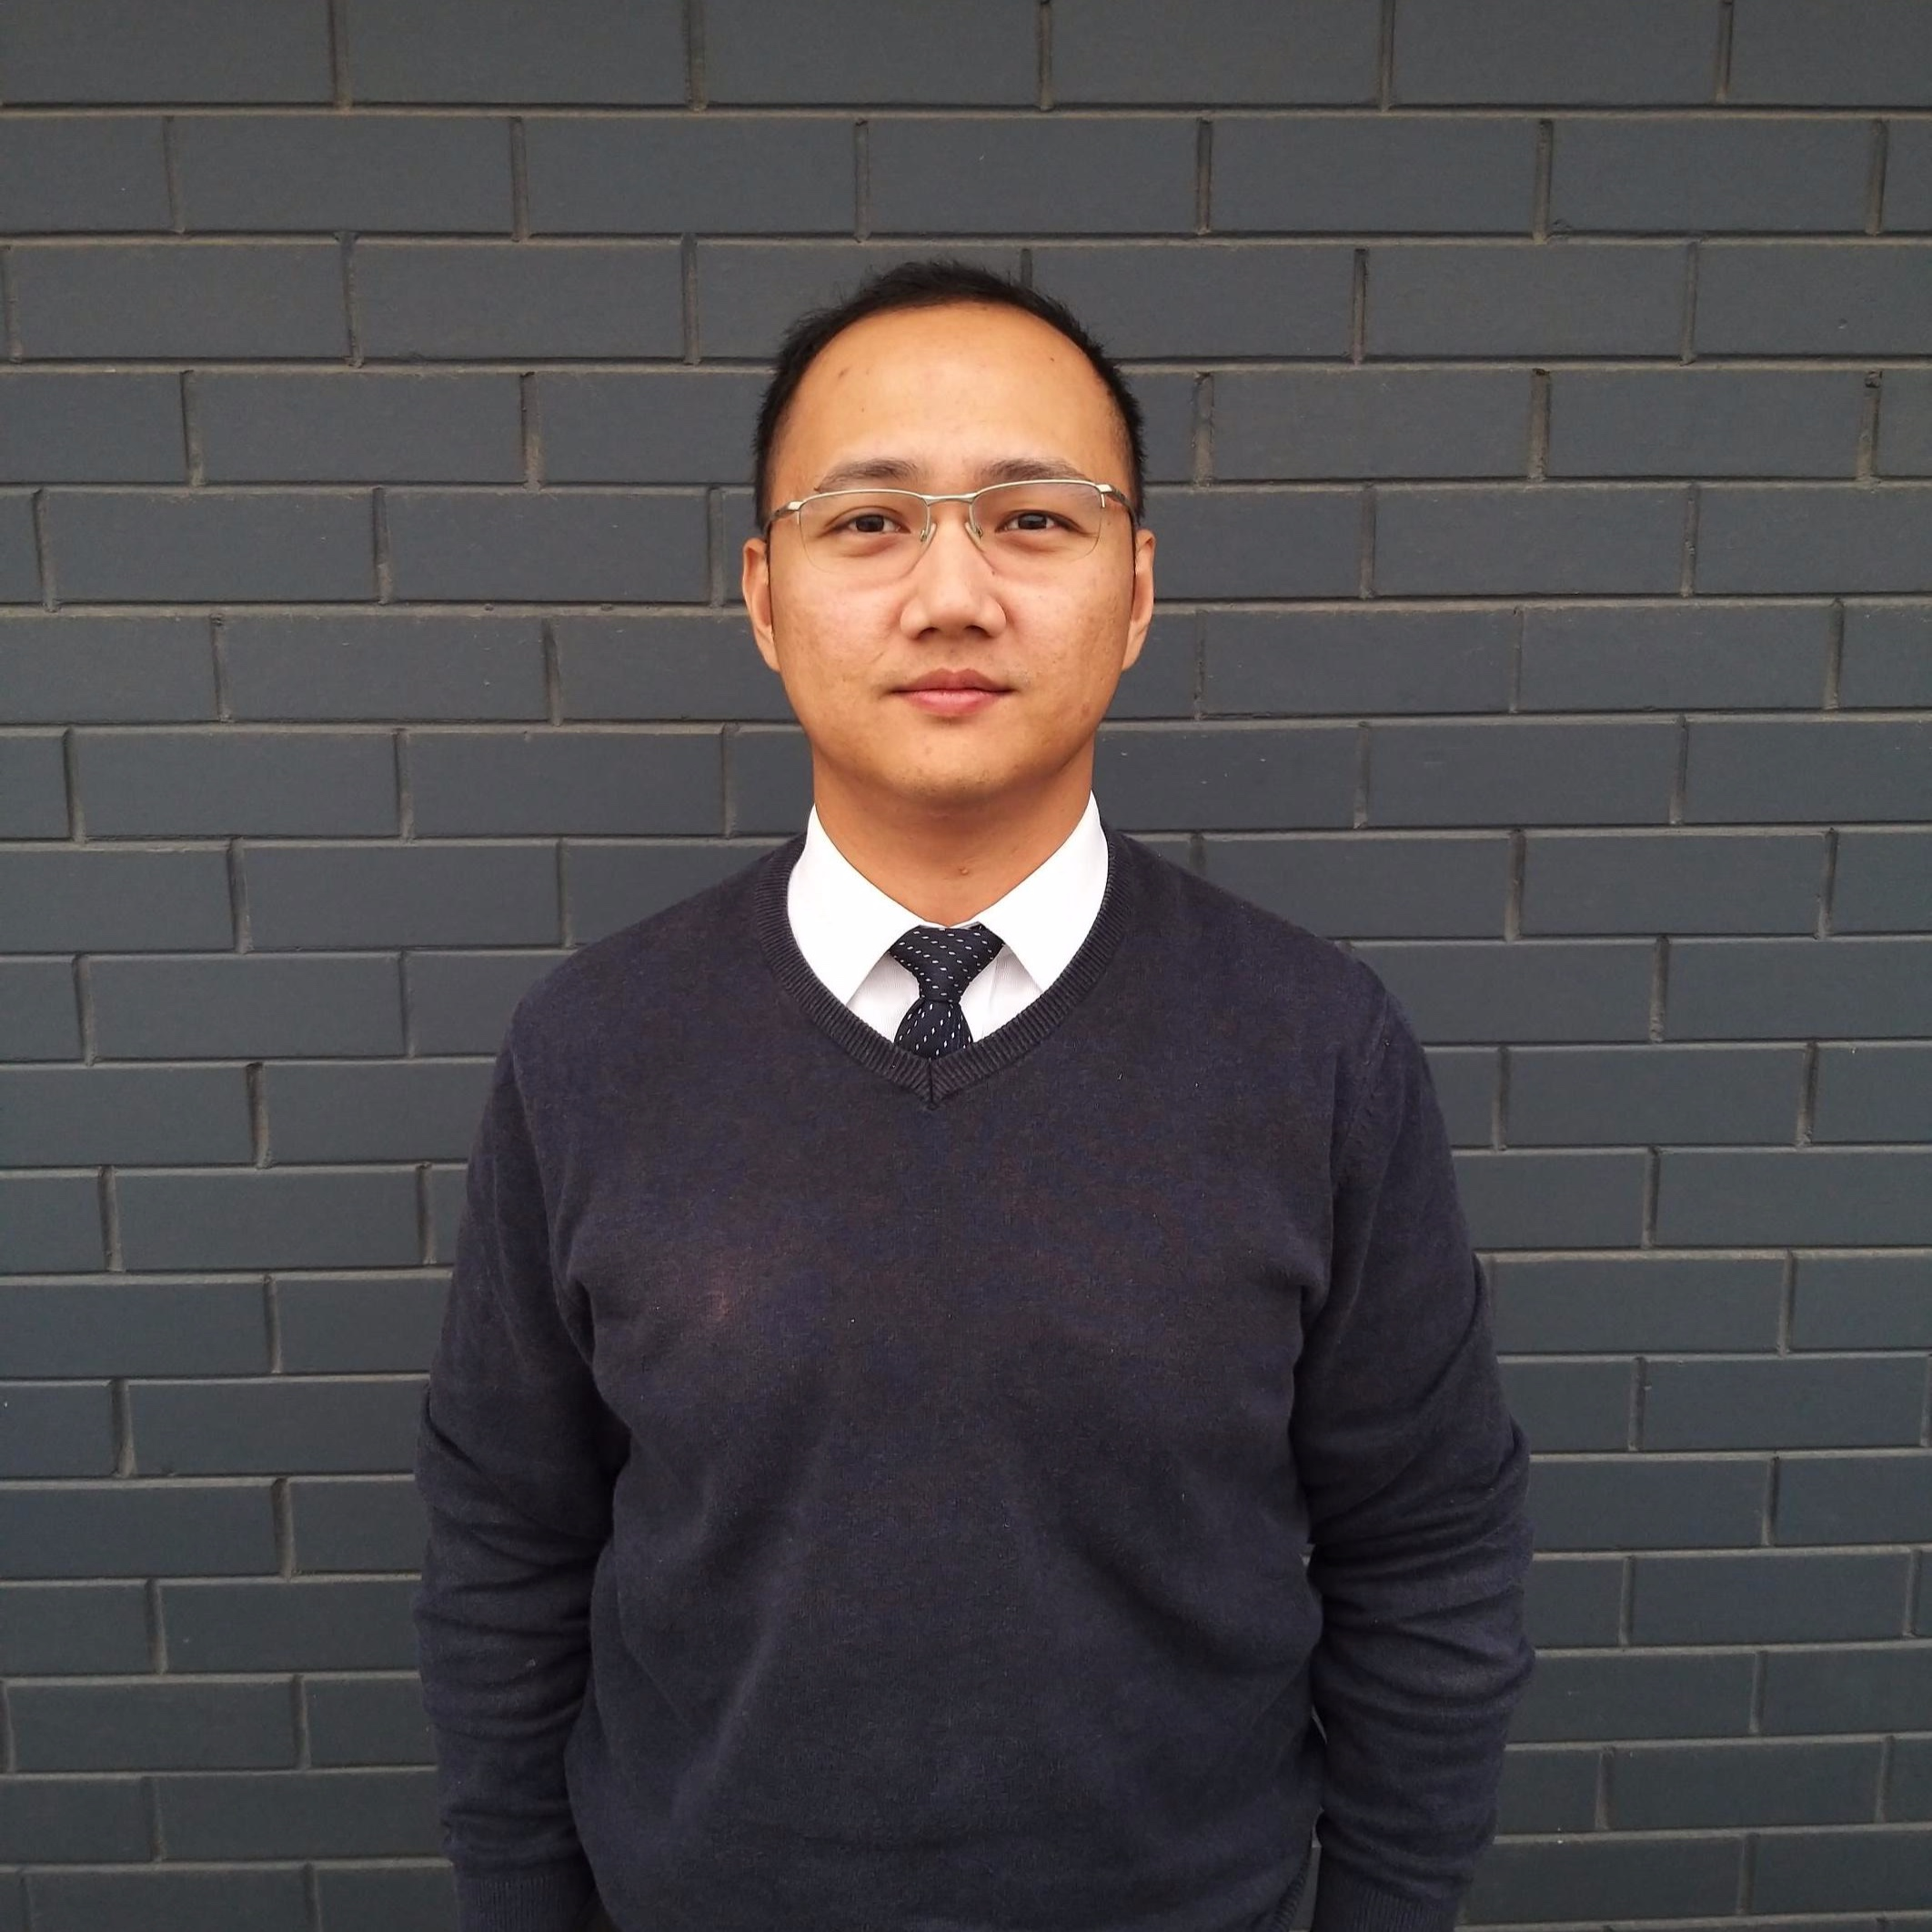 Kester Vidal - Kester was one of the first licensed property managers in SA, under the new government guidelines, and previously worked in customer service roles, before transferring to his goal of working in Property management and property investment.